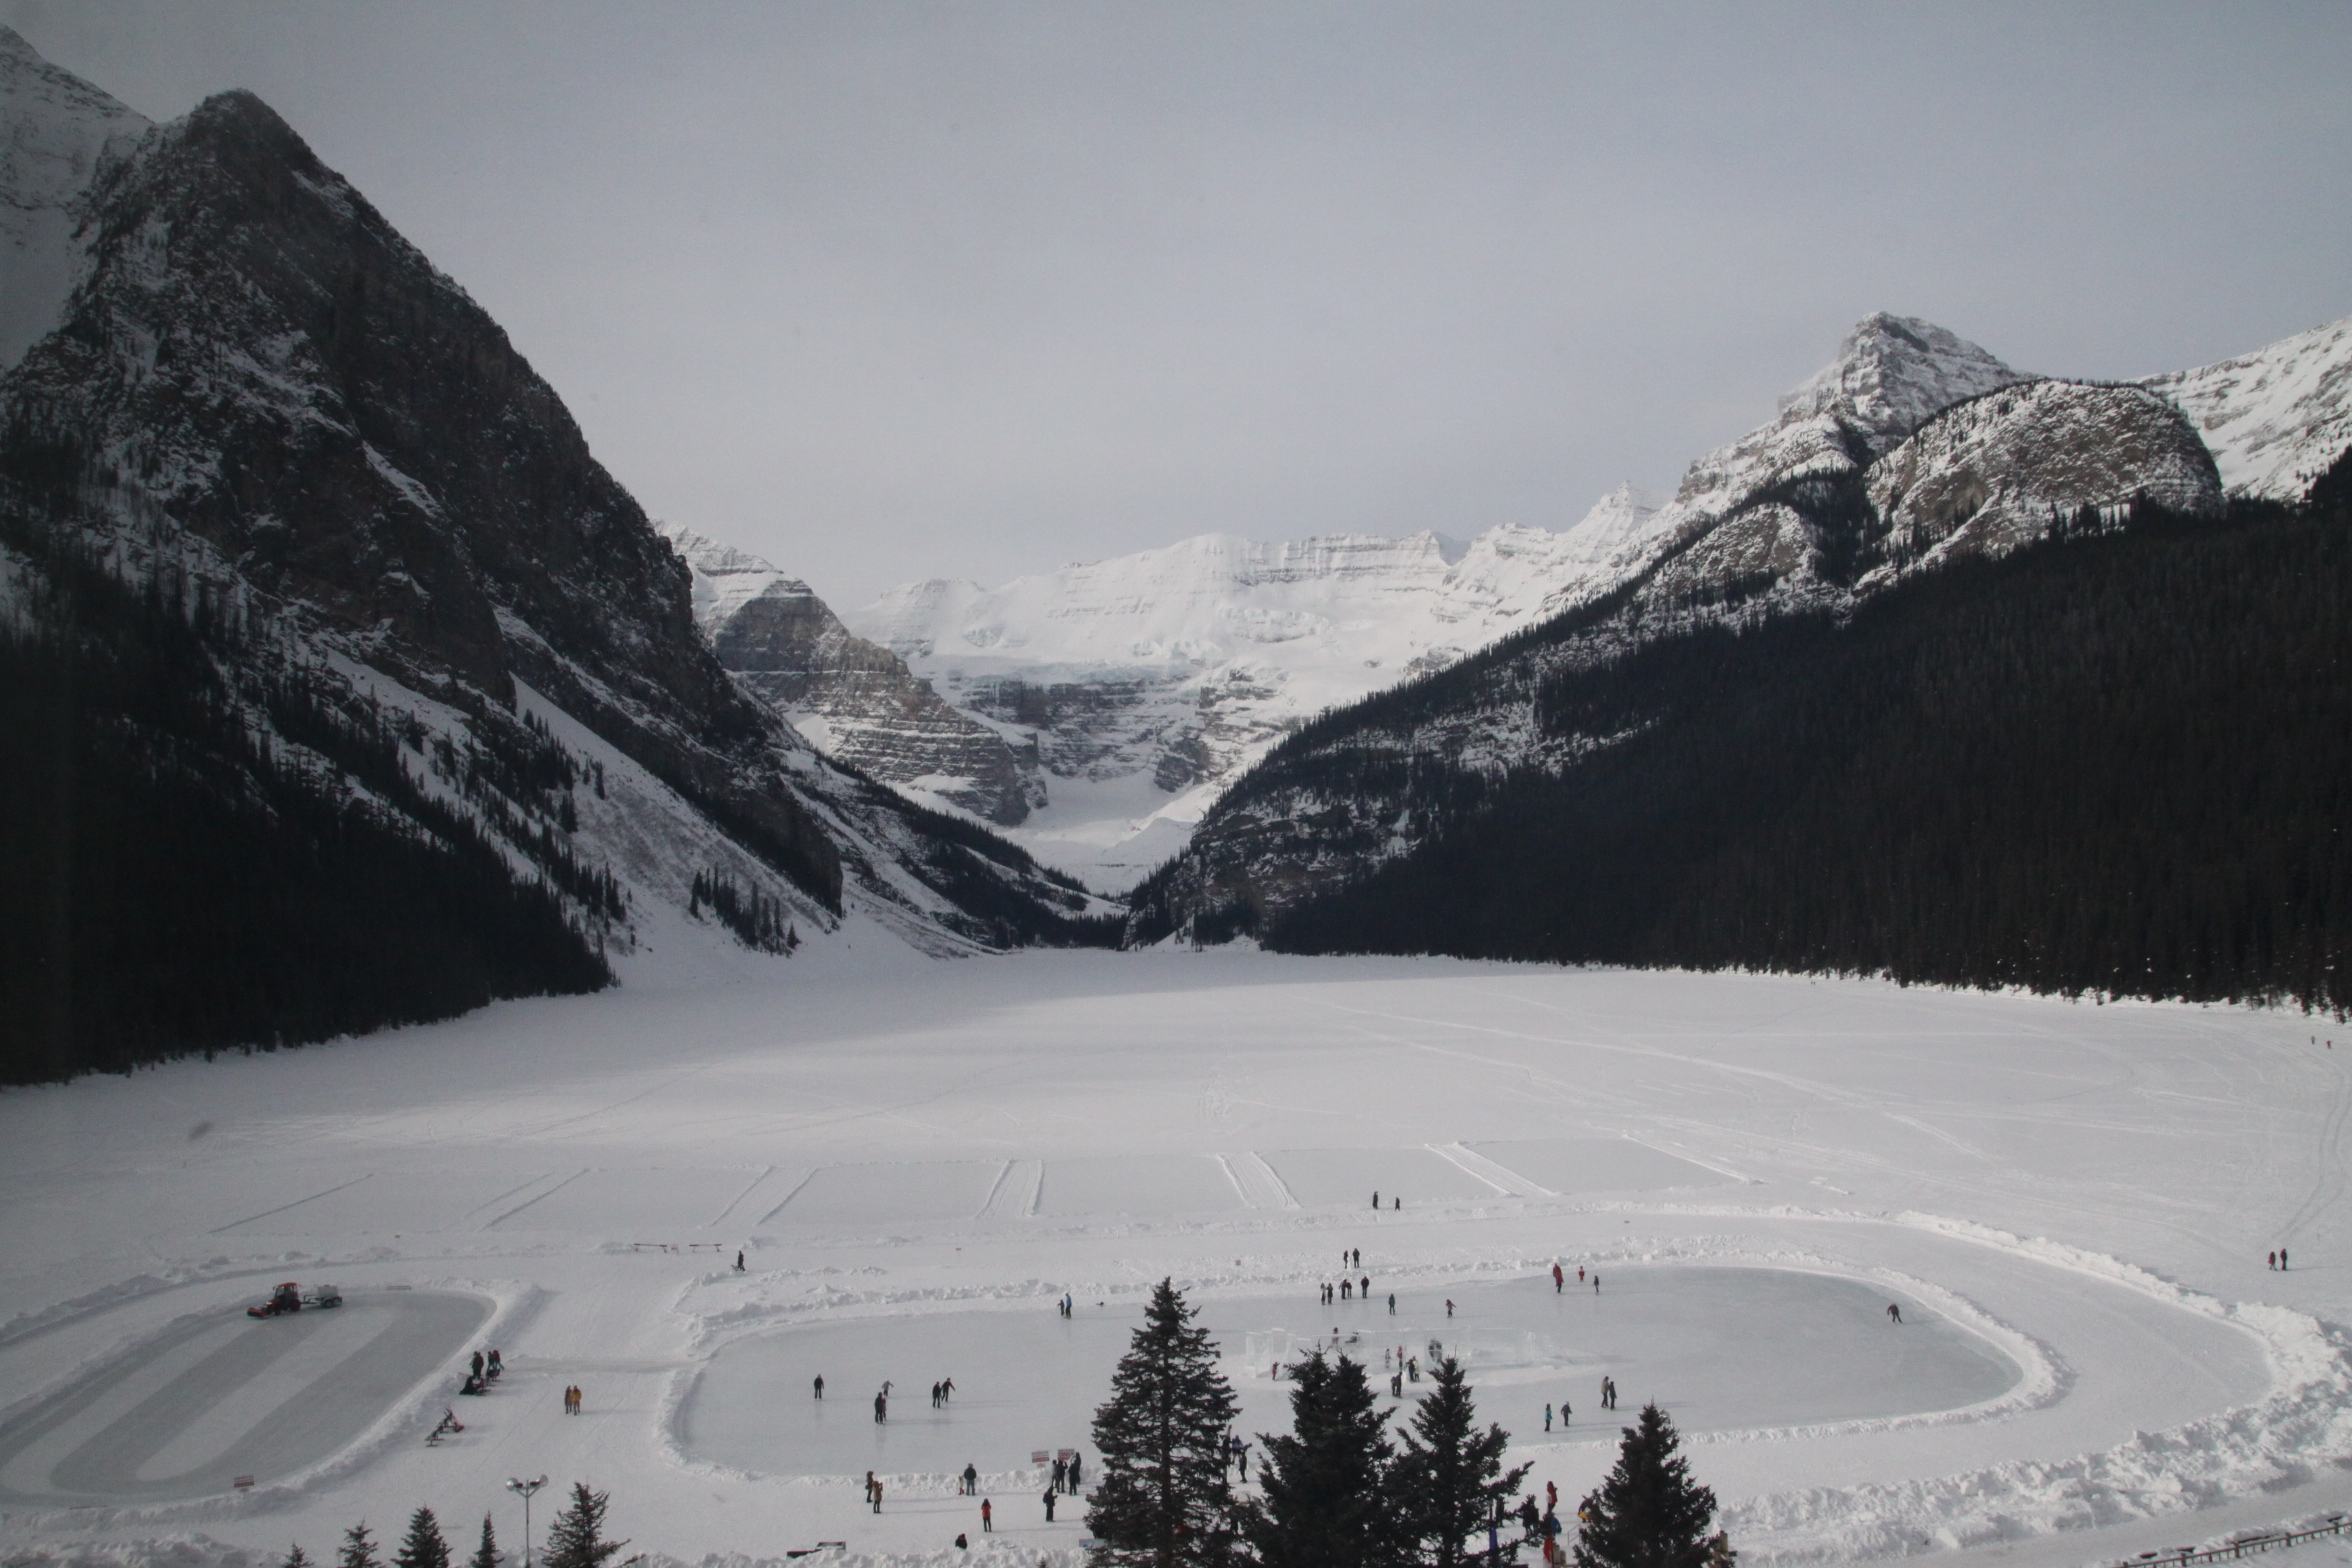 Little Squirm Visits Lake Louise